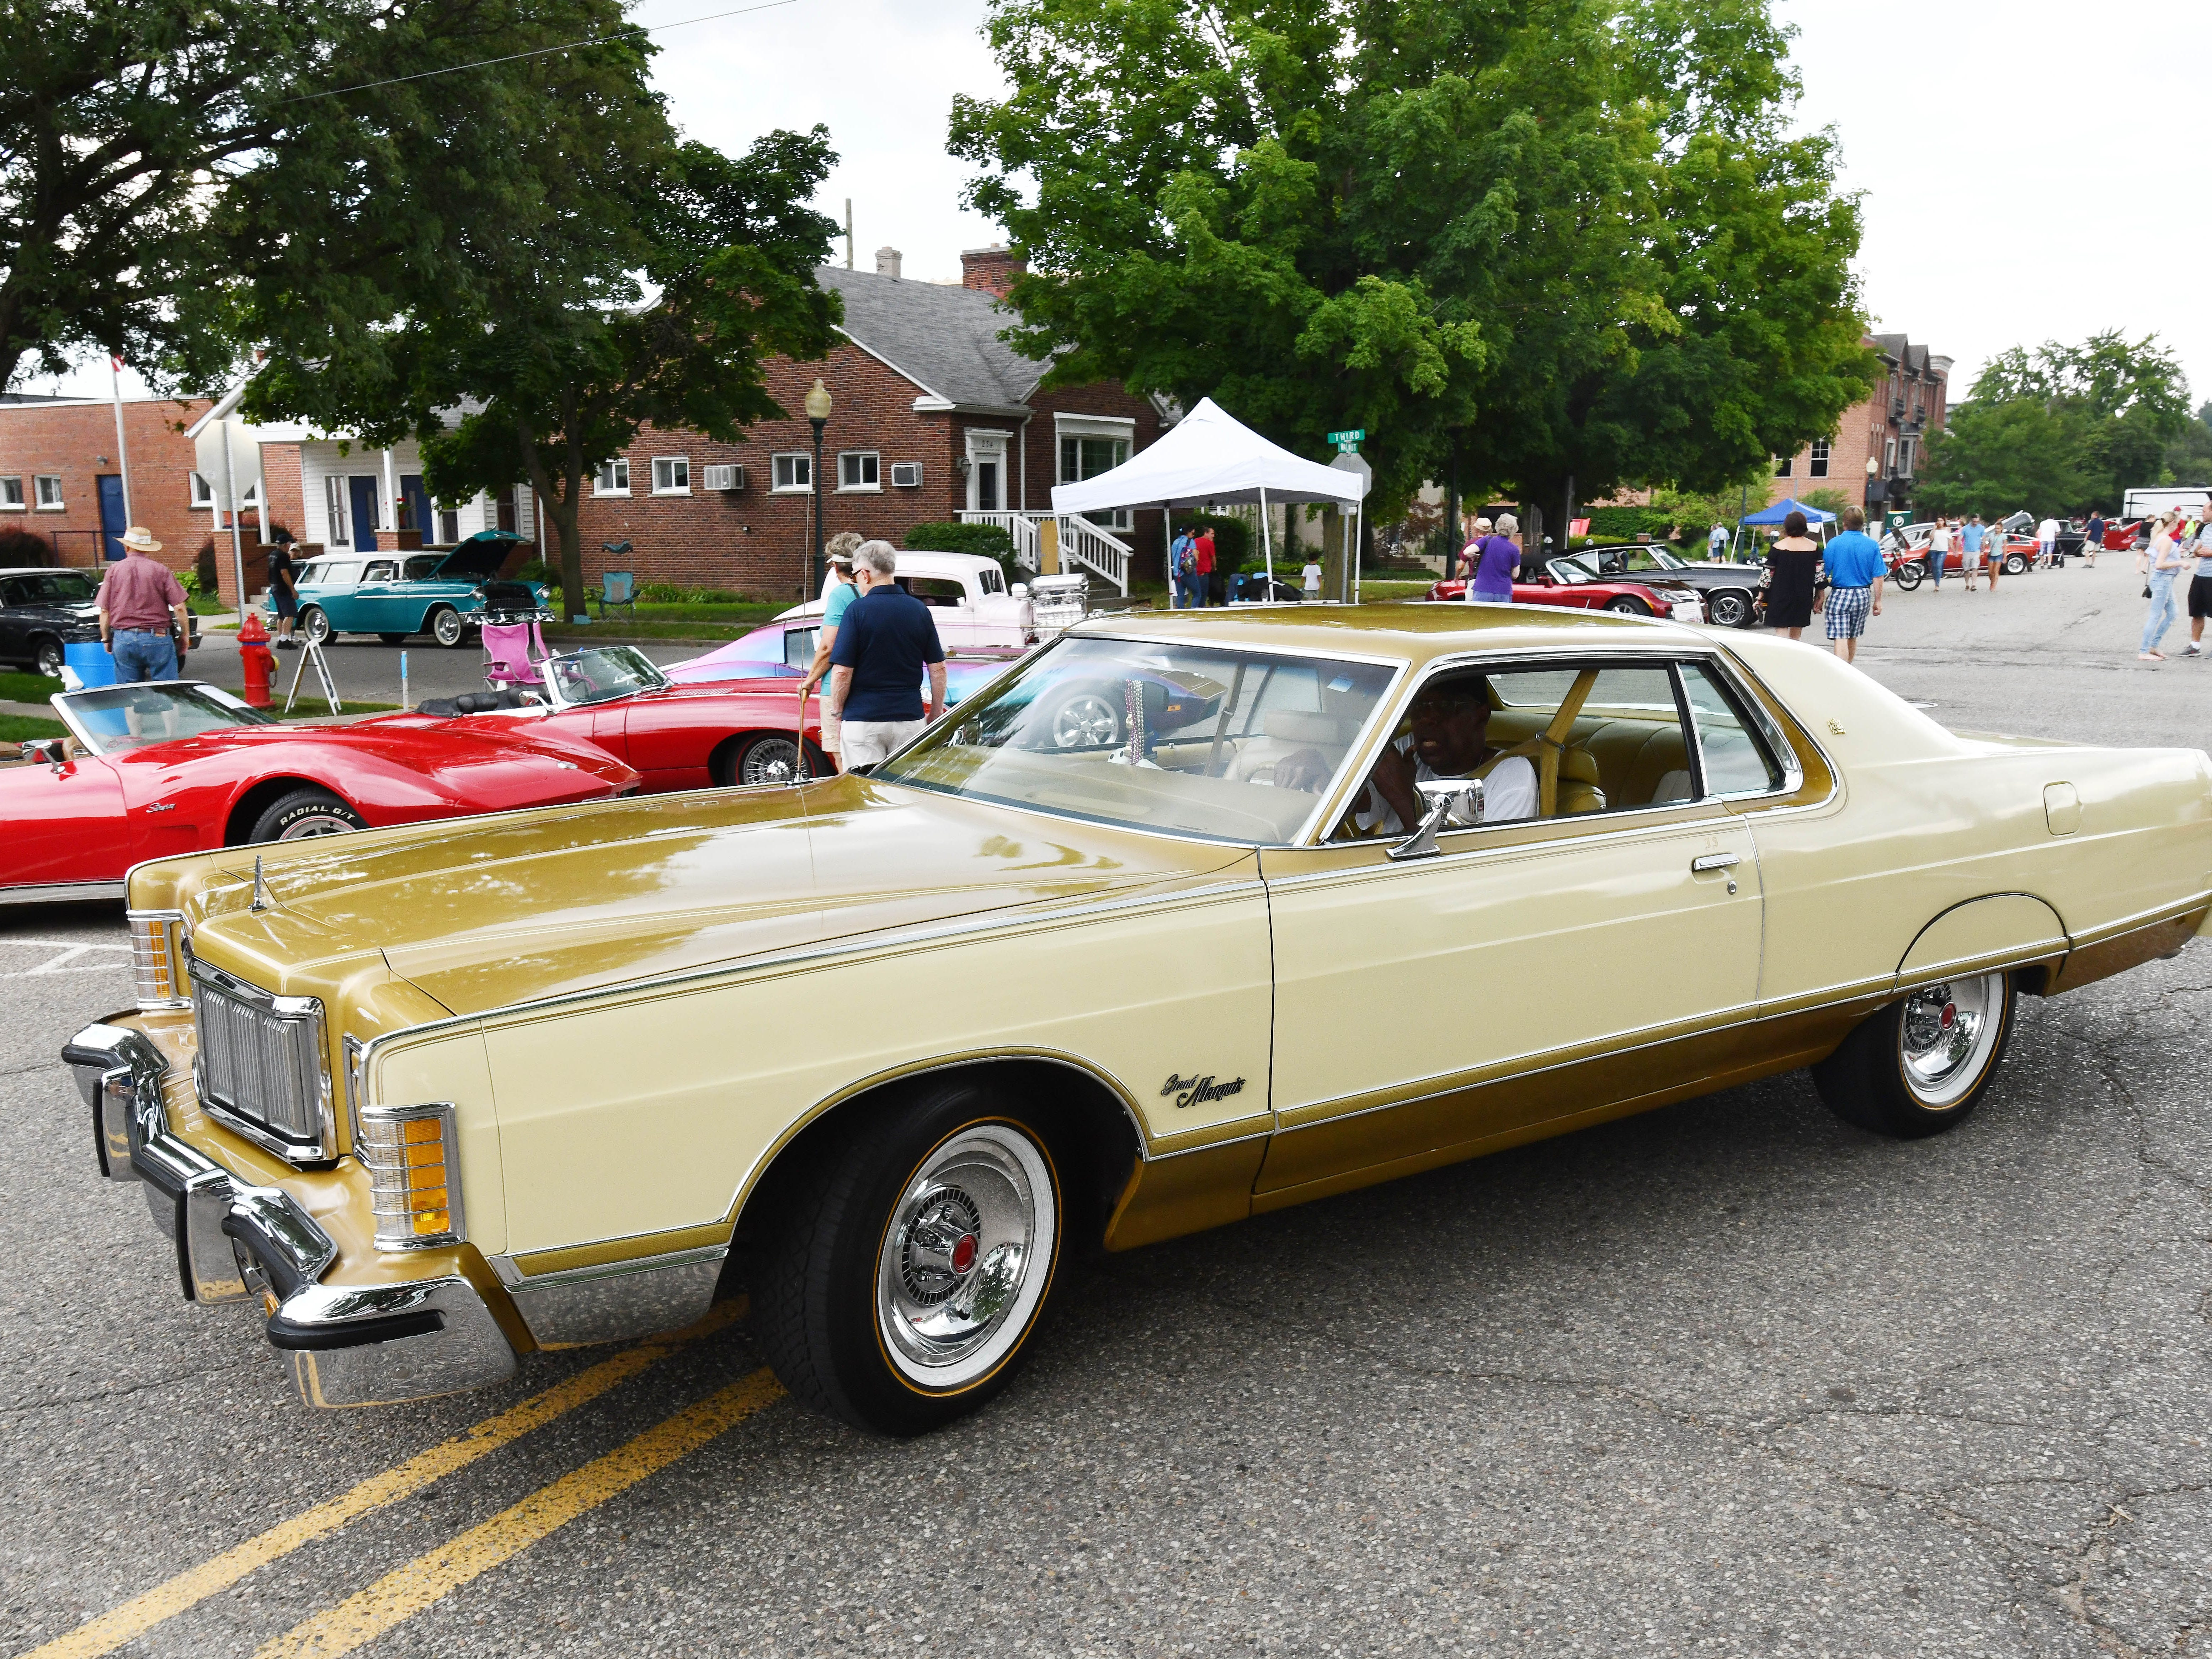 """At 19' 8"""", Frank Smith's 1976 Mercury Grand Marquis needs the whole road to get down the street."""